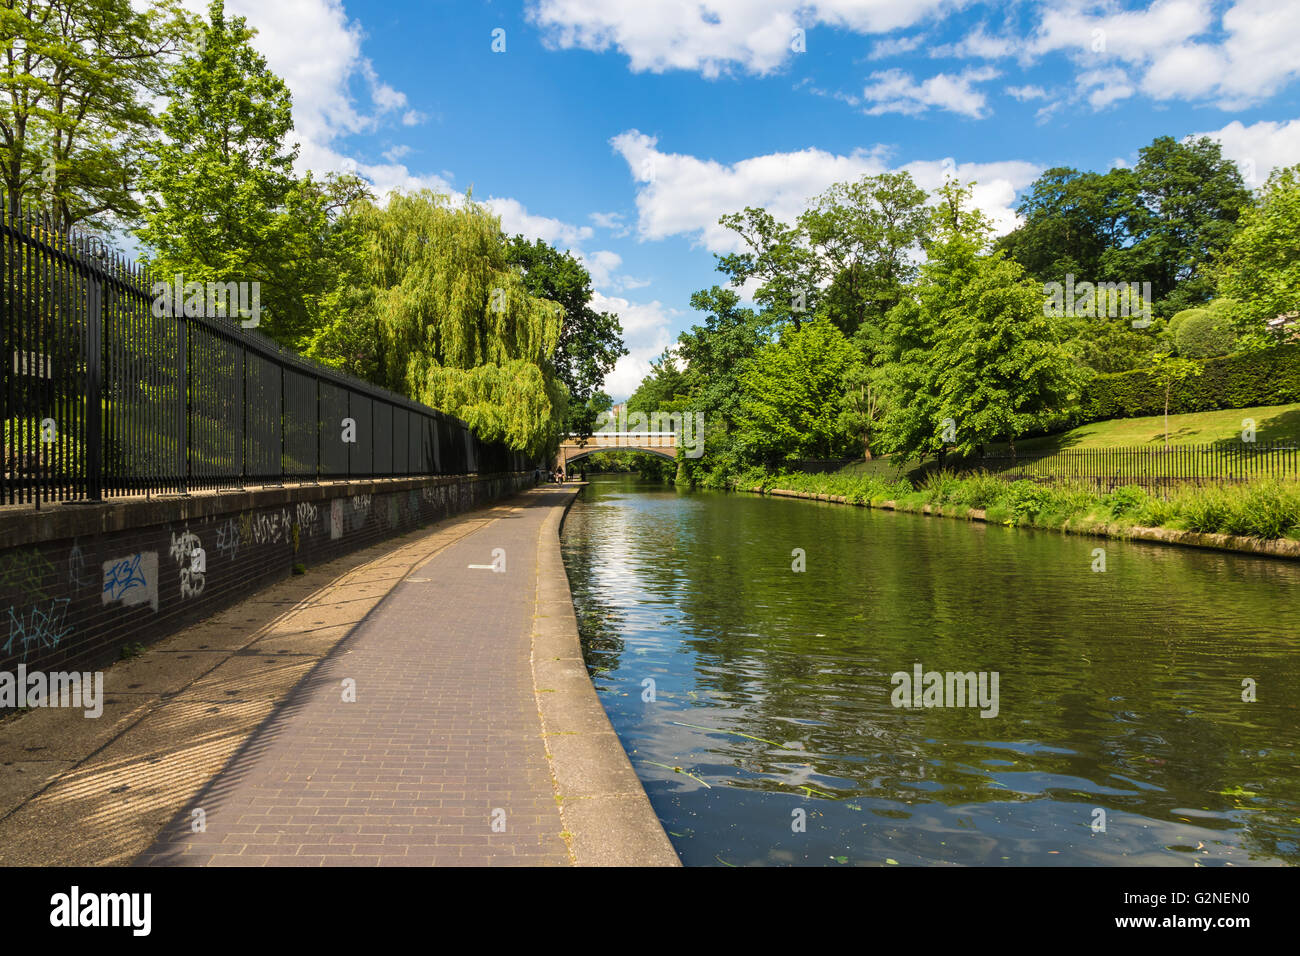 Relaxing scenery of Regent's canal in London, UK - Stock Image